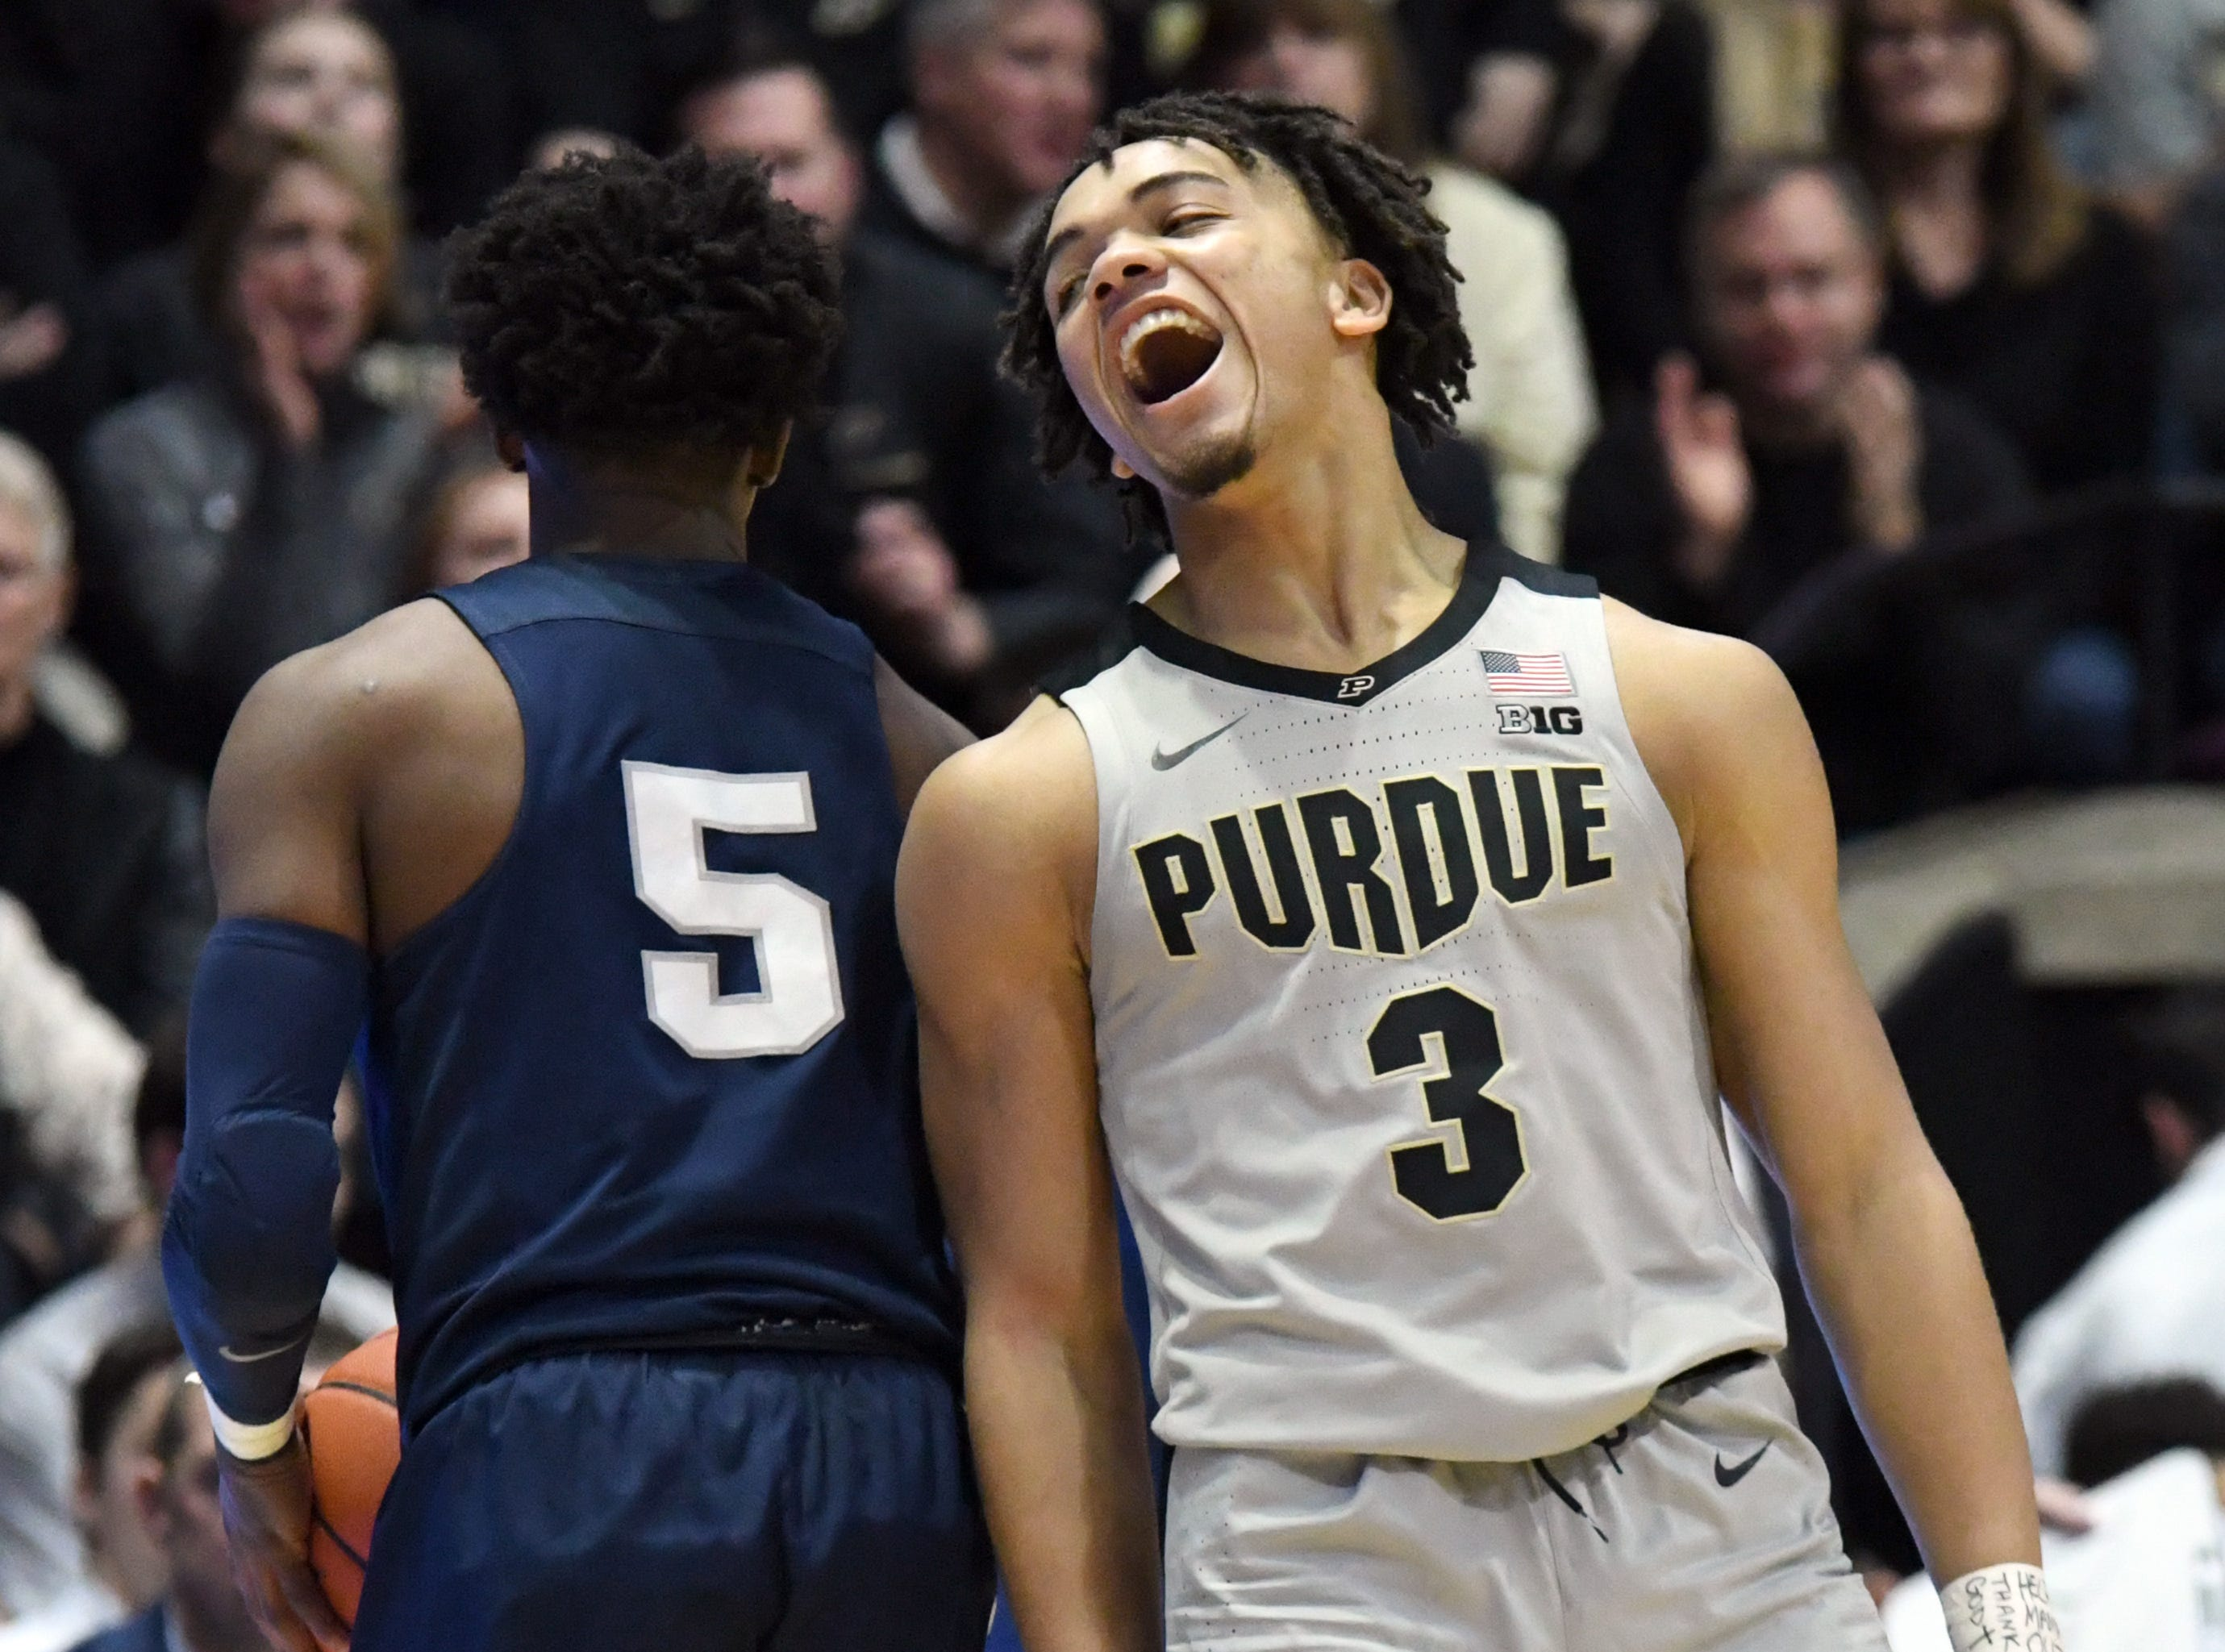 By Frank Oliver for the Journal and Courier --Purdue's Carsen Edwards laughs as Penn State calls a timeout in the Boilers' 76-64 win over Penn State at Purdue on Saturday February 16, 2019.